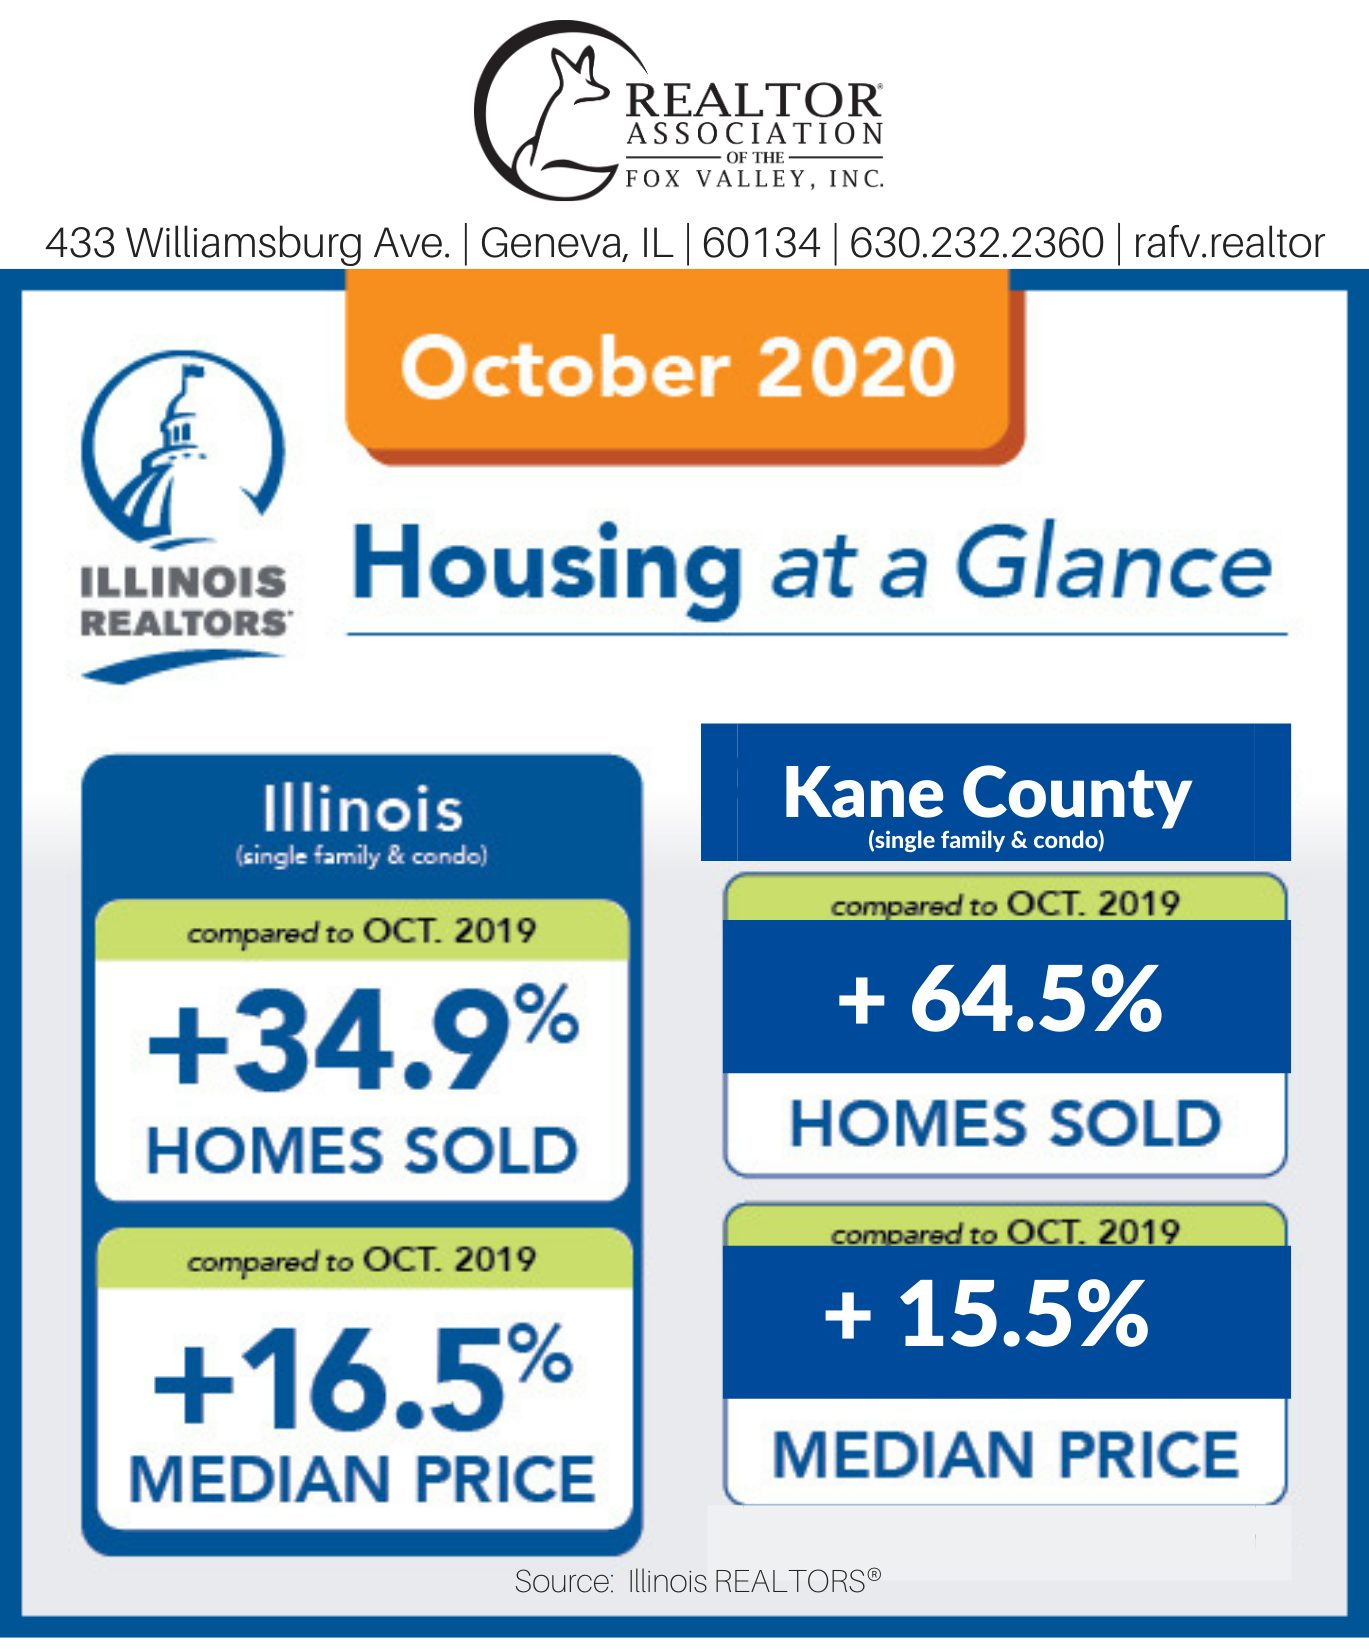 October 2020 Housing At A Glance